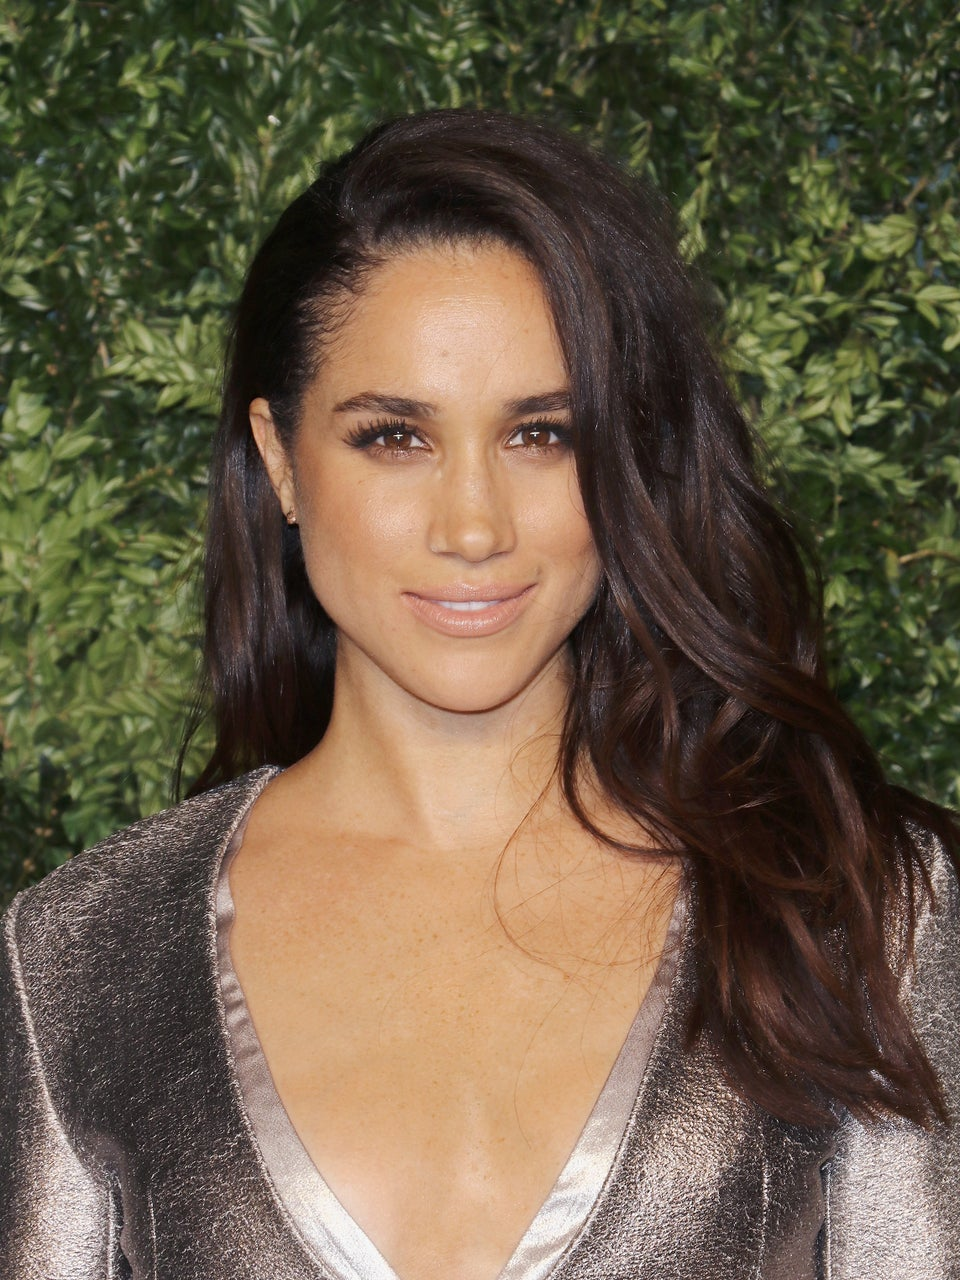 Meghan Markle on Dating Prince Harry: 'It's Really Simple. We're Two People Who Are Really Happy and in Love'